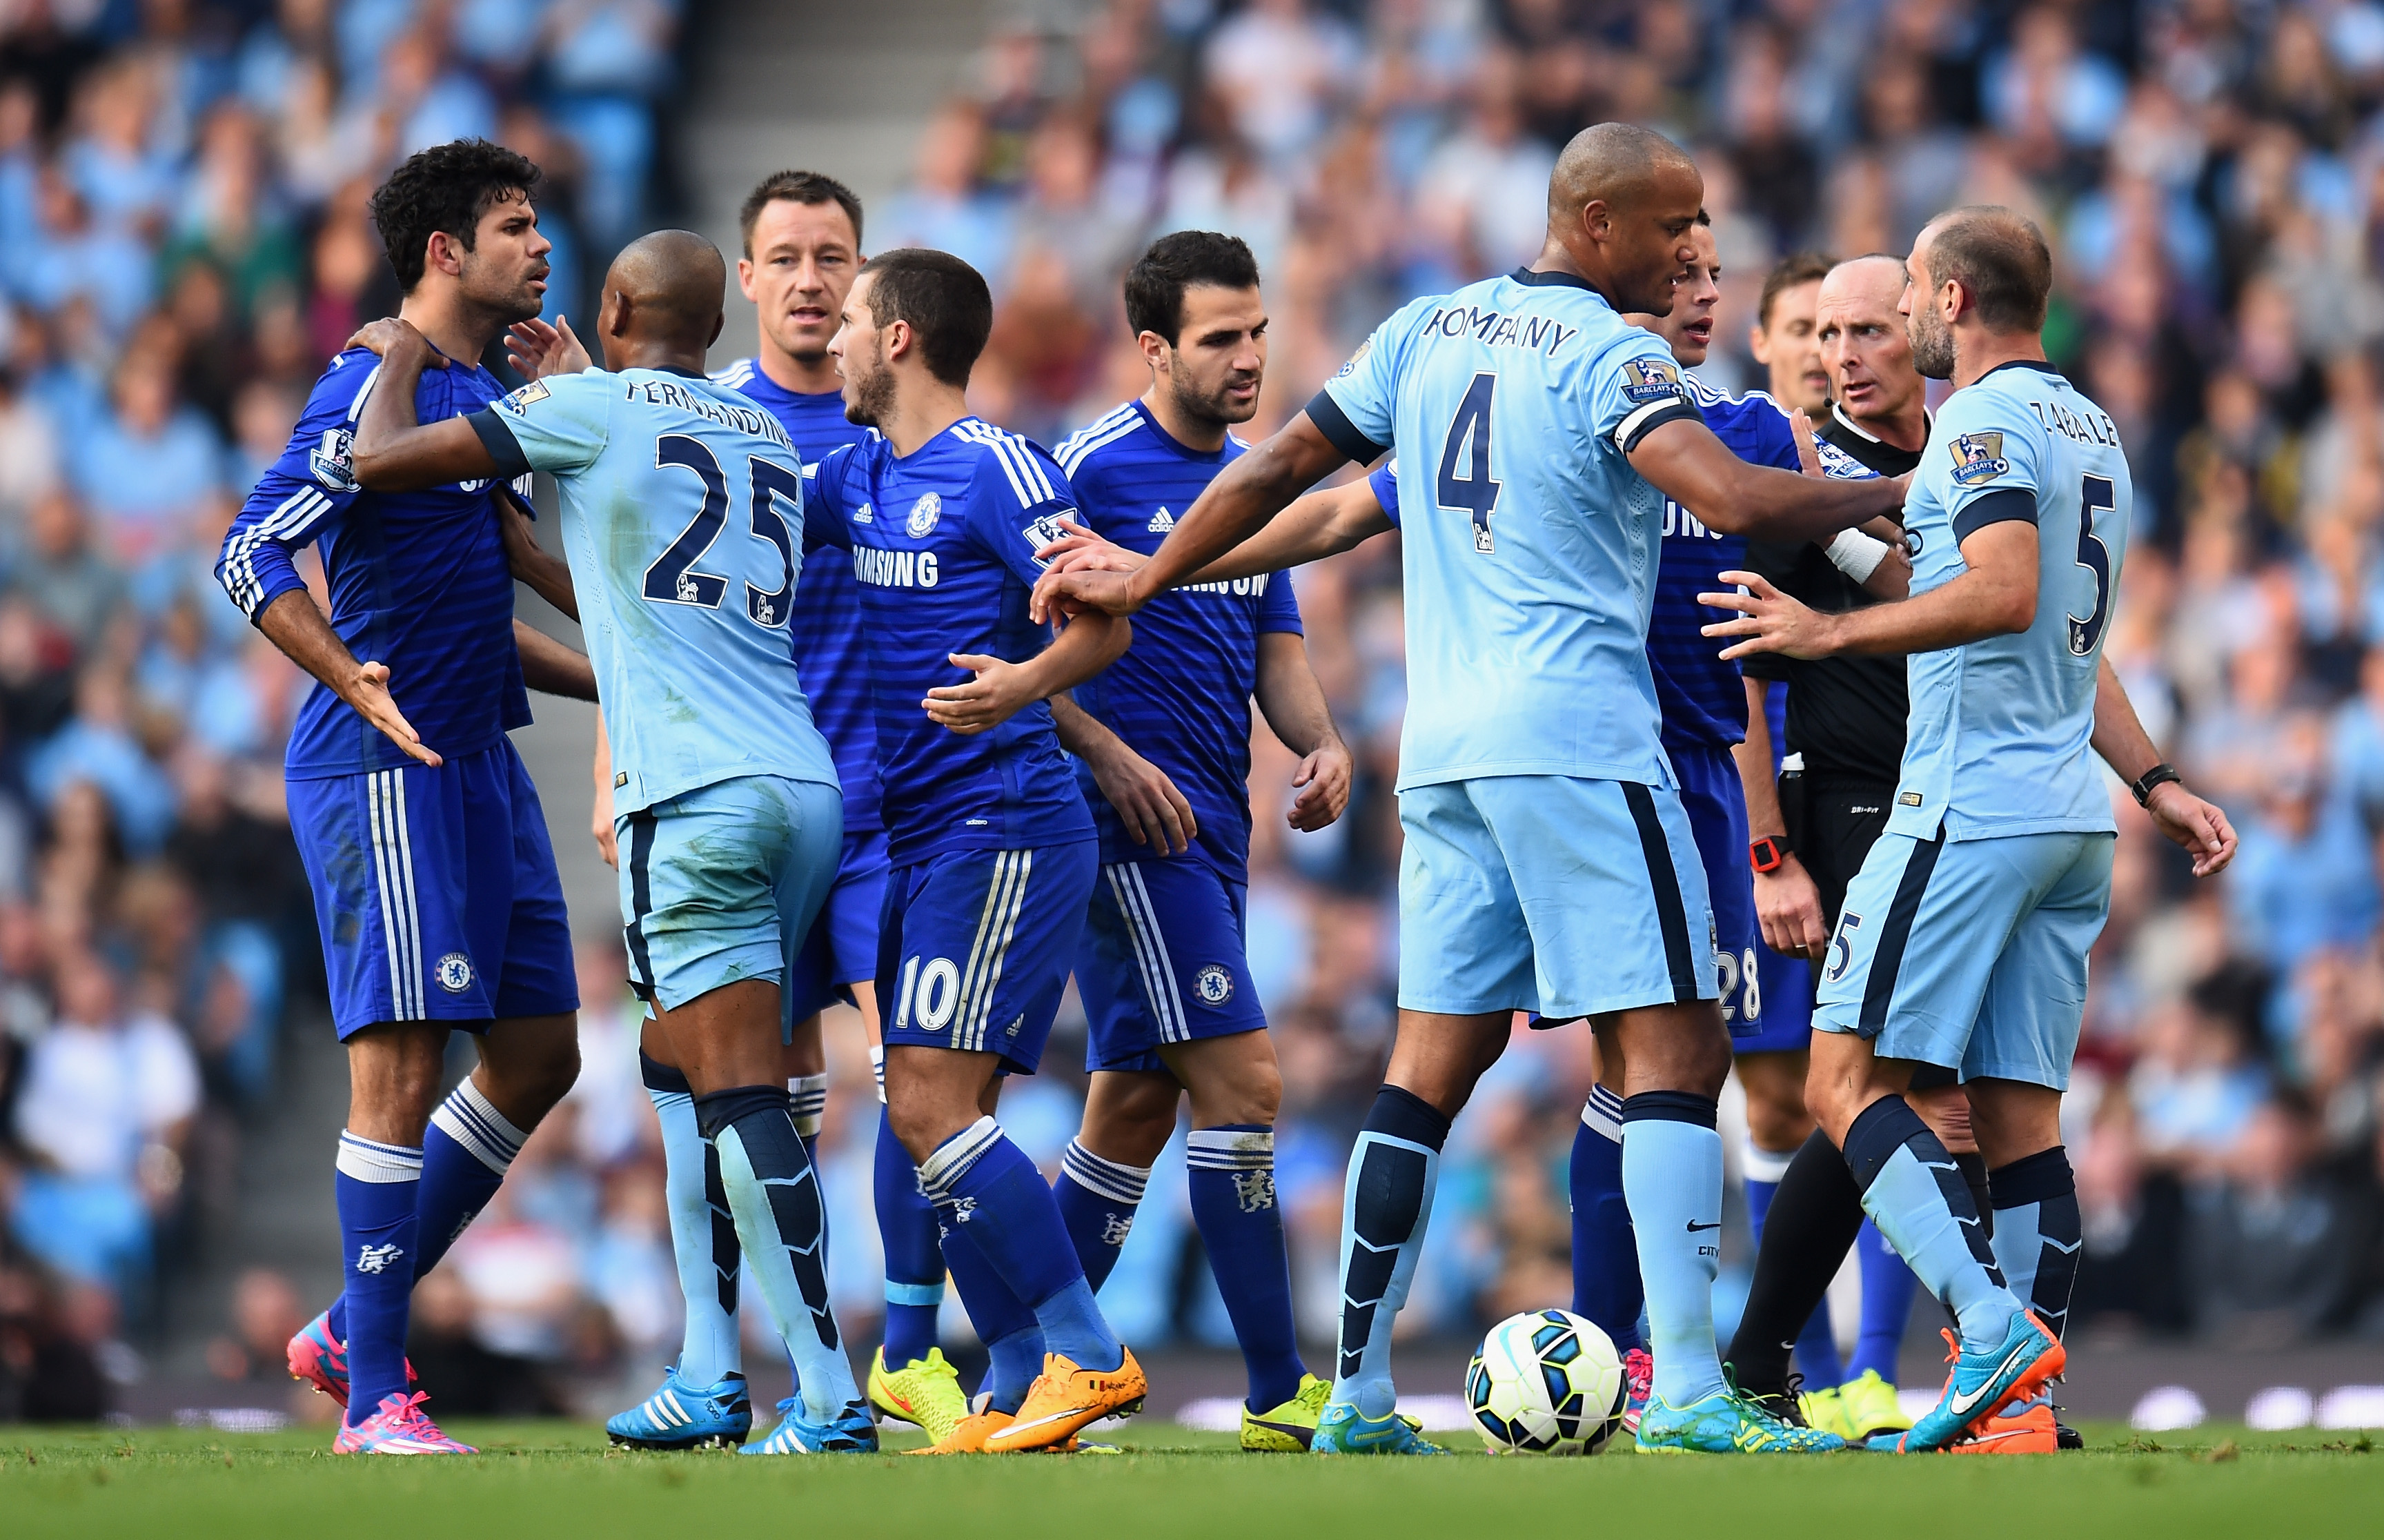 MANCHESTER, ENGLAND - SEPTEMBER 21:   Pablo Zabaleta of Manchester City is separated from Diego Costa of Chelsea by his team-mates during the Barclays Premier League match between Manchester City and Chelsea at the Etihad Stadium on September 21, 2014 in Manchester, England.  (Photo by Shaun Botterill/Getty Images)